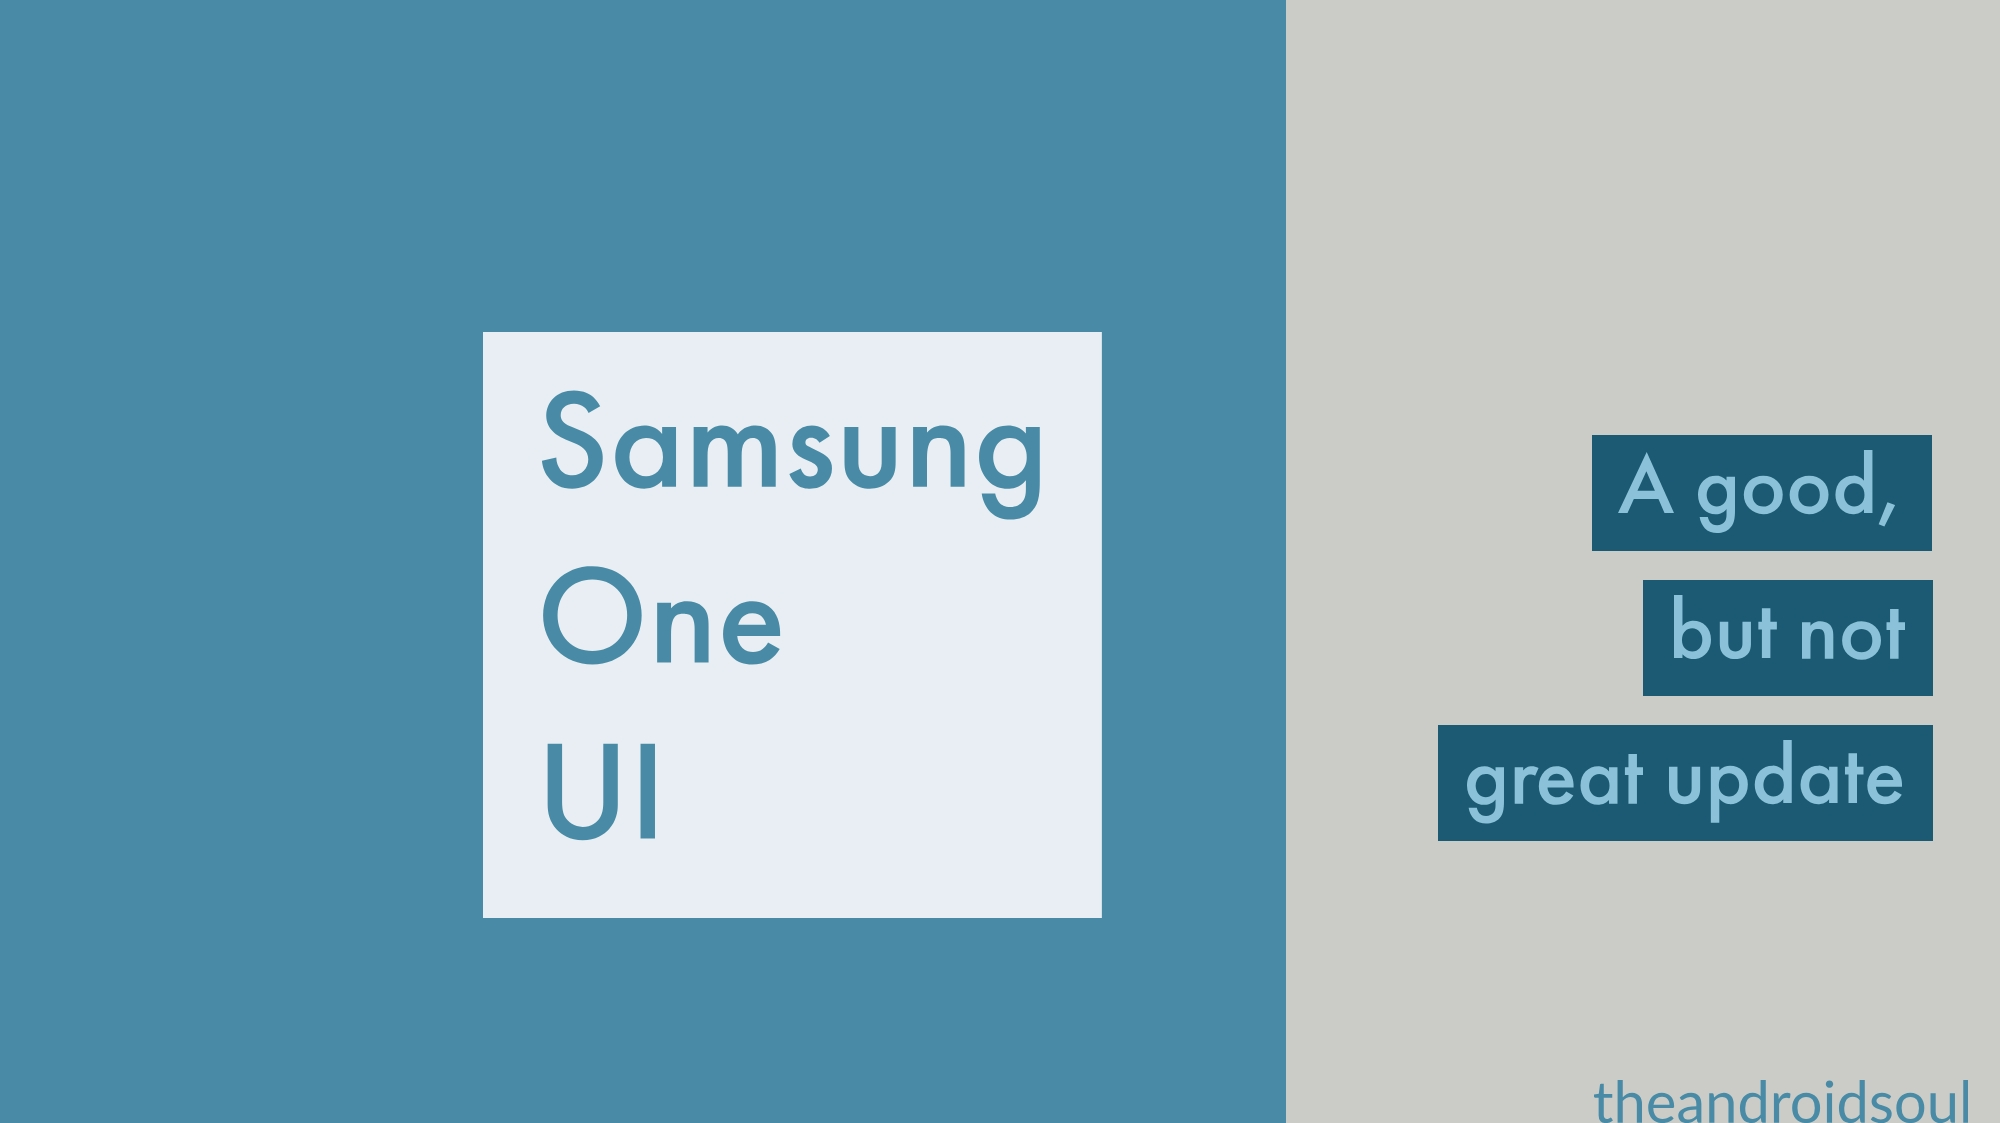 Why Samsung's One UI is half baked and not a worthy update